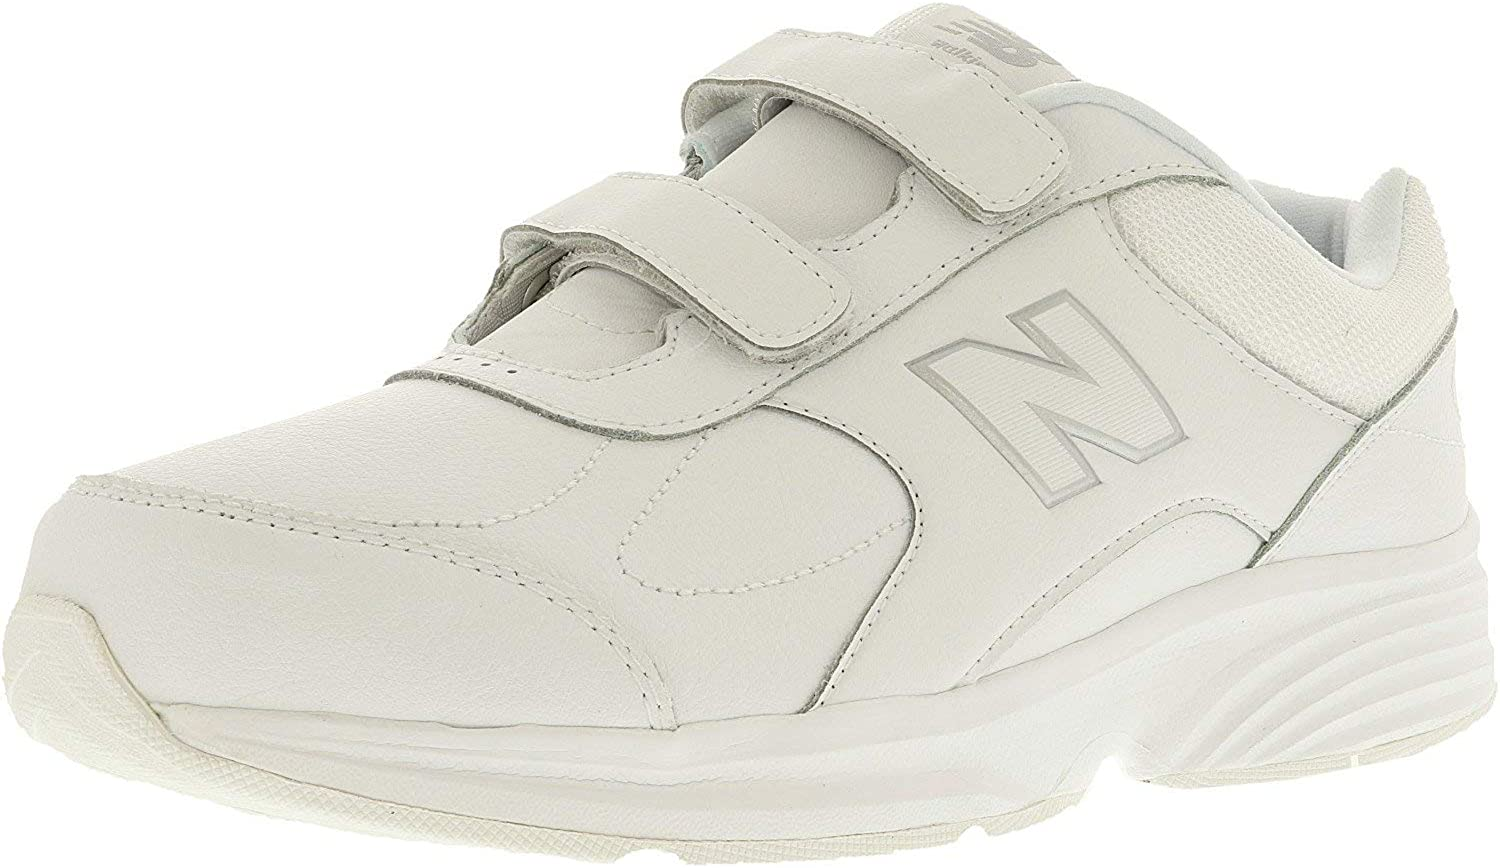 New Balance Men's Mw475 Ankle-High Walking shoes